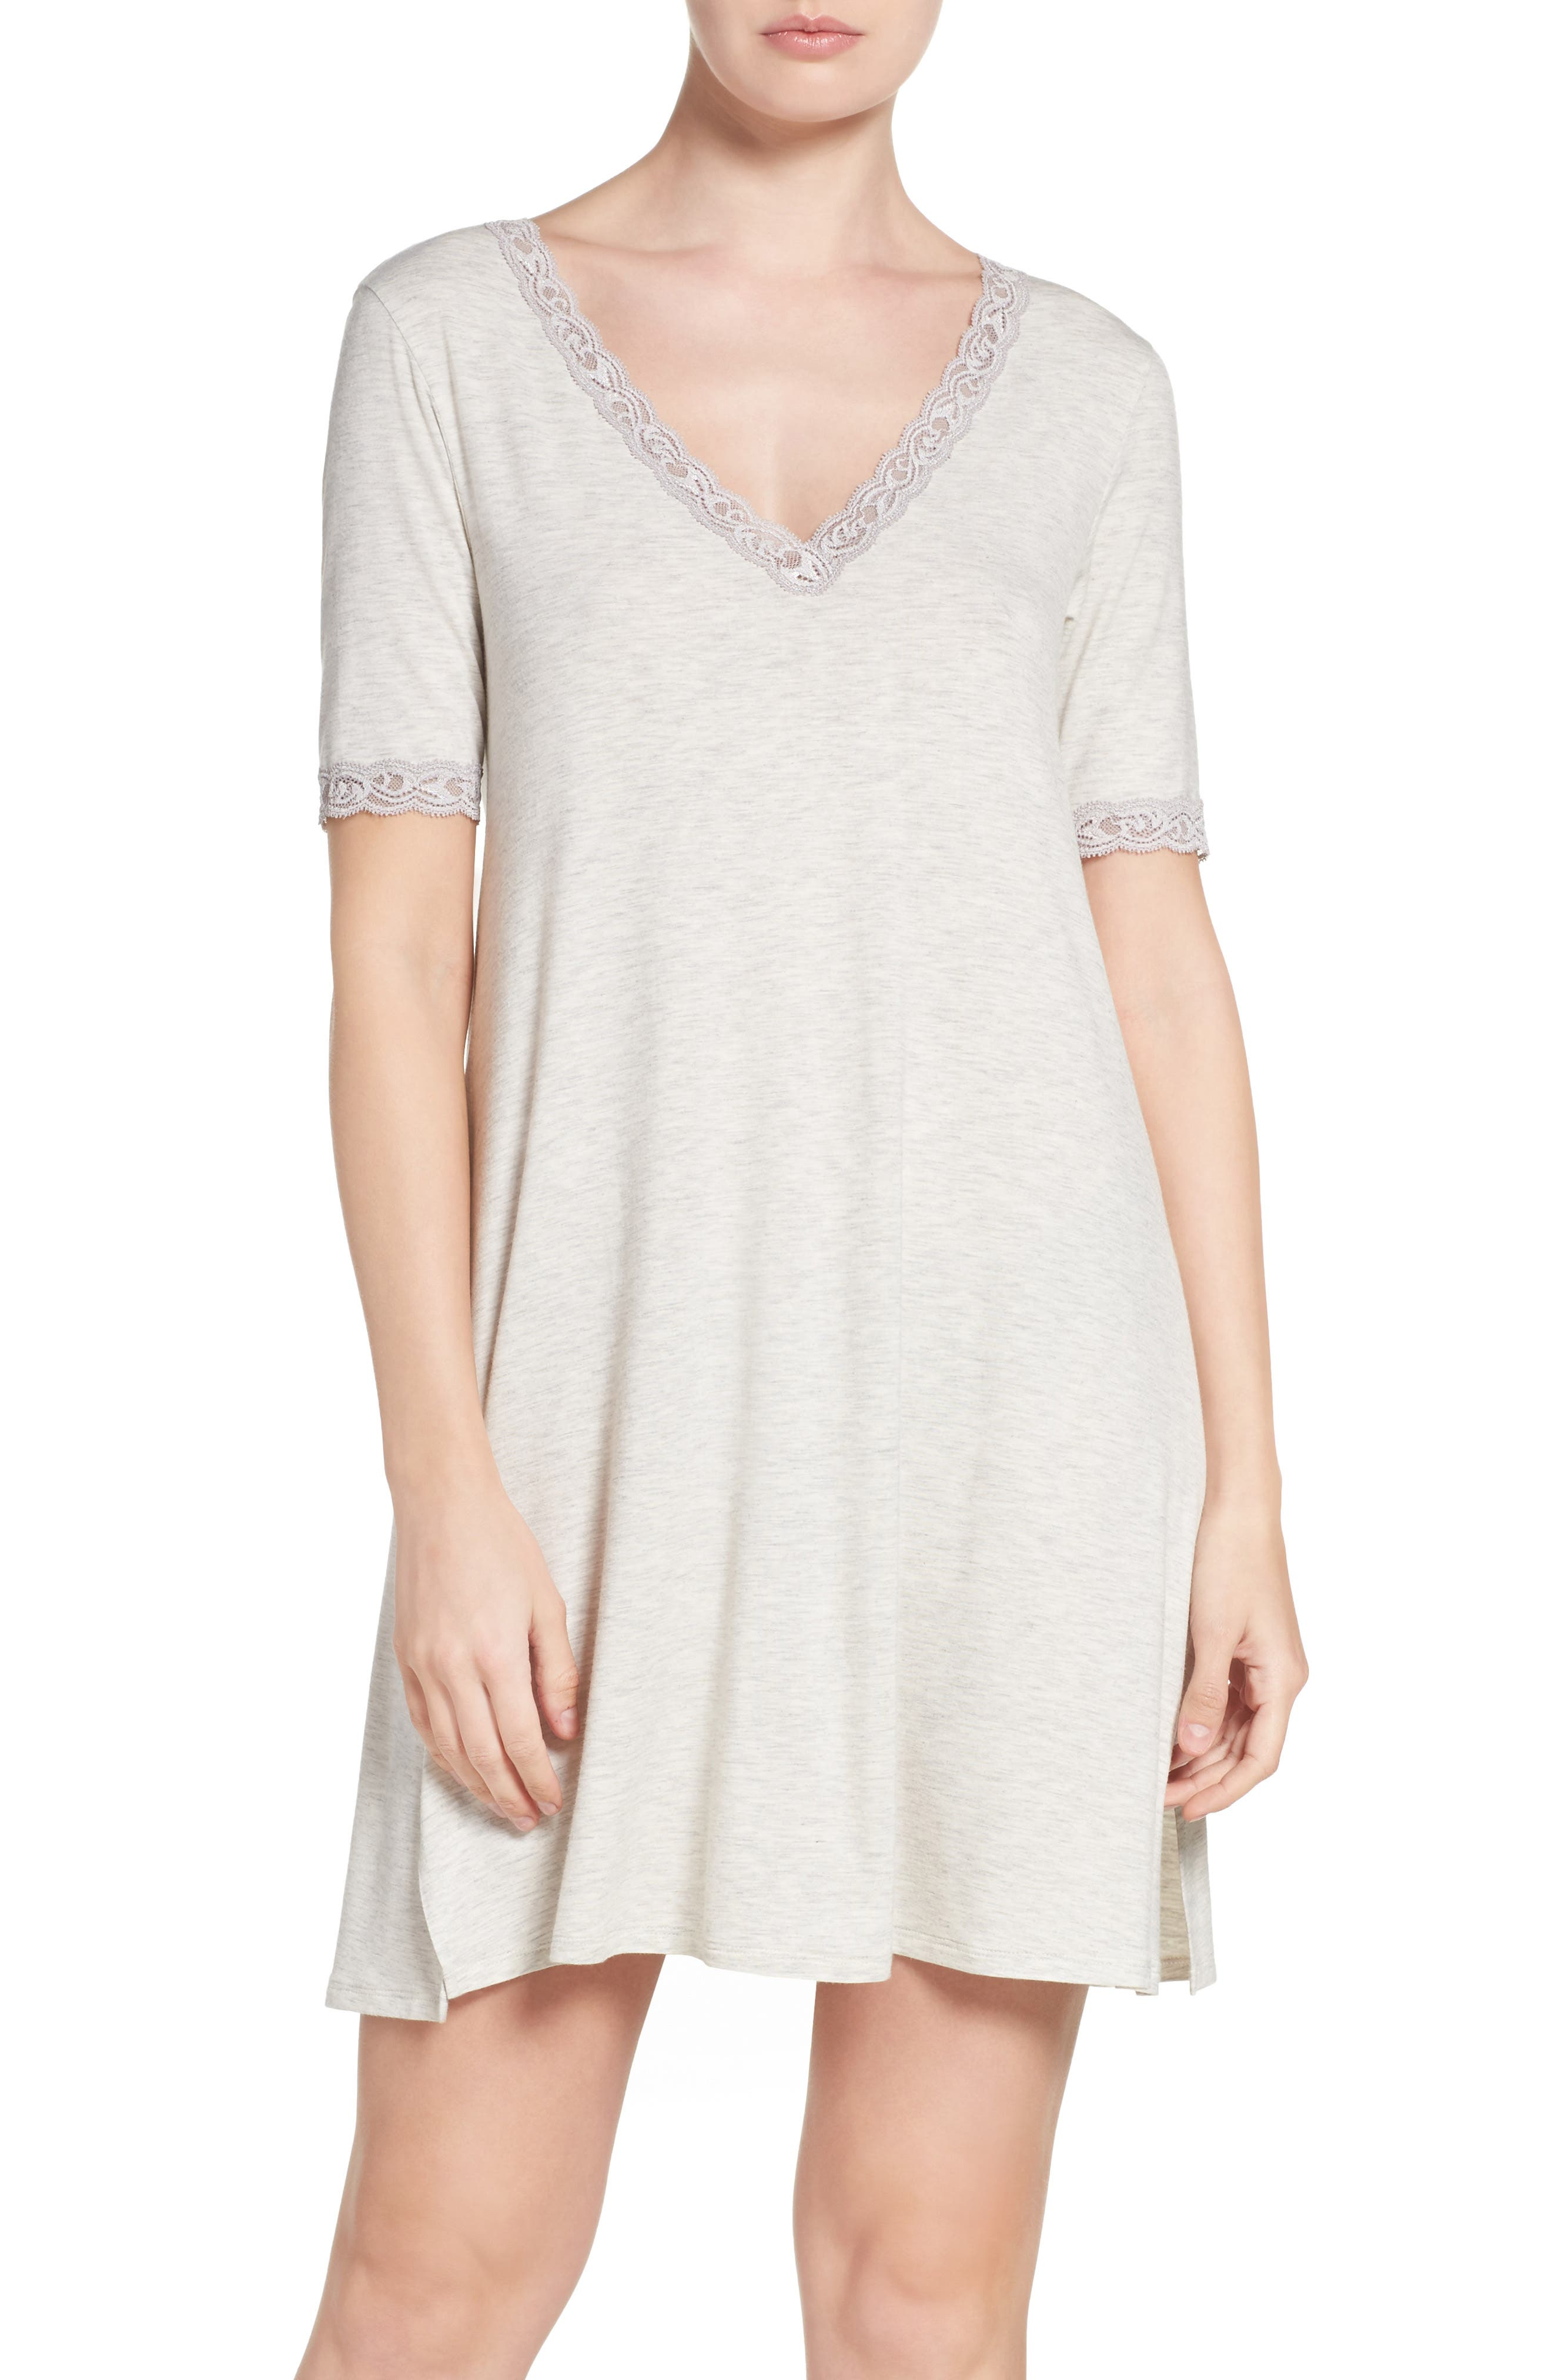 Feathers Lace-Trim Sleepshirt, Black in Heathered Ink